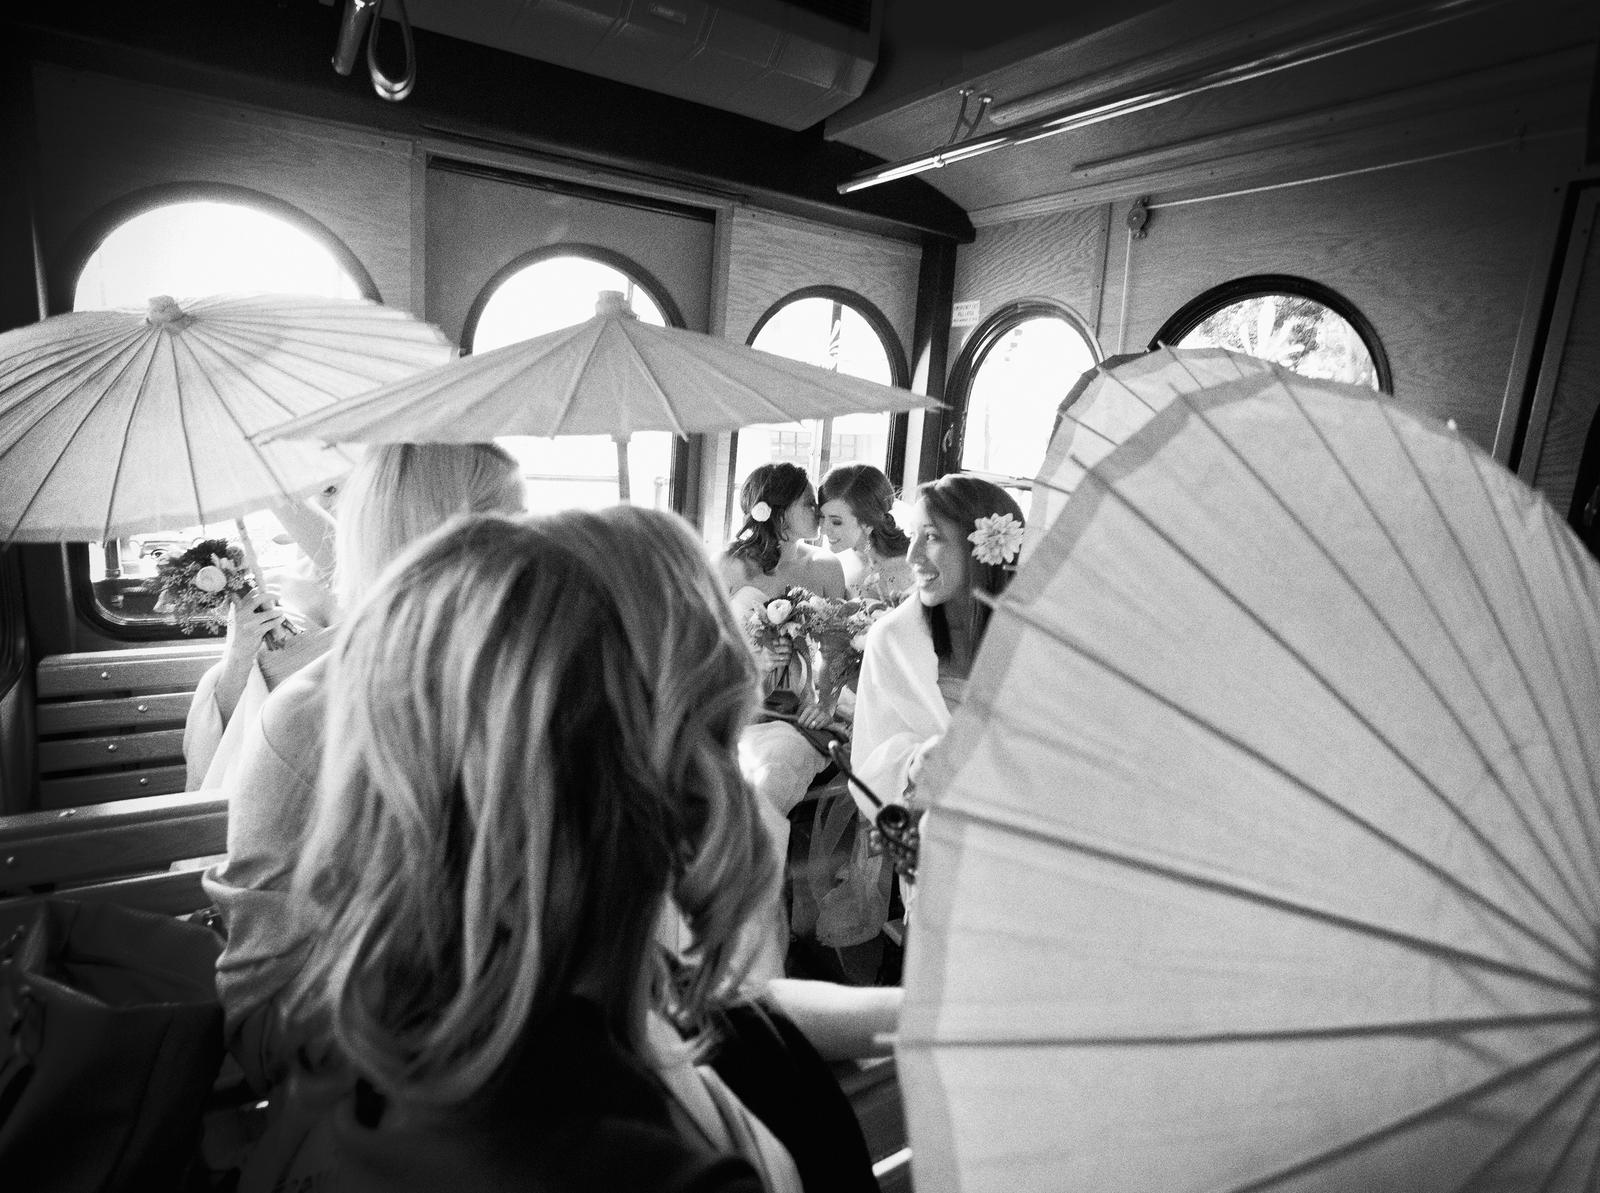 Wedding Photography | A bride and her wedding party sit on a trolley, holding open parasols.